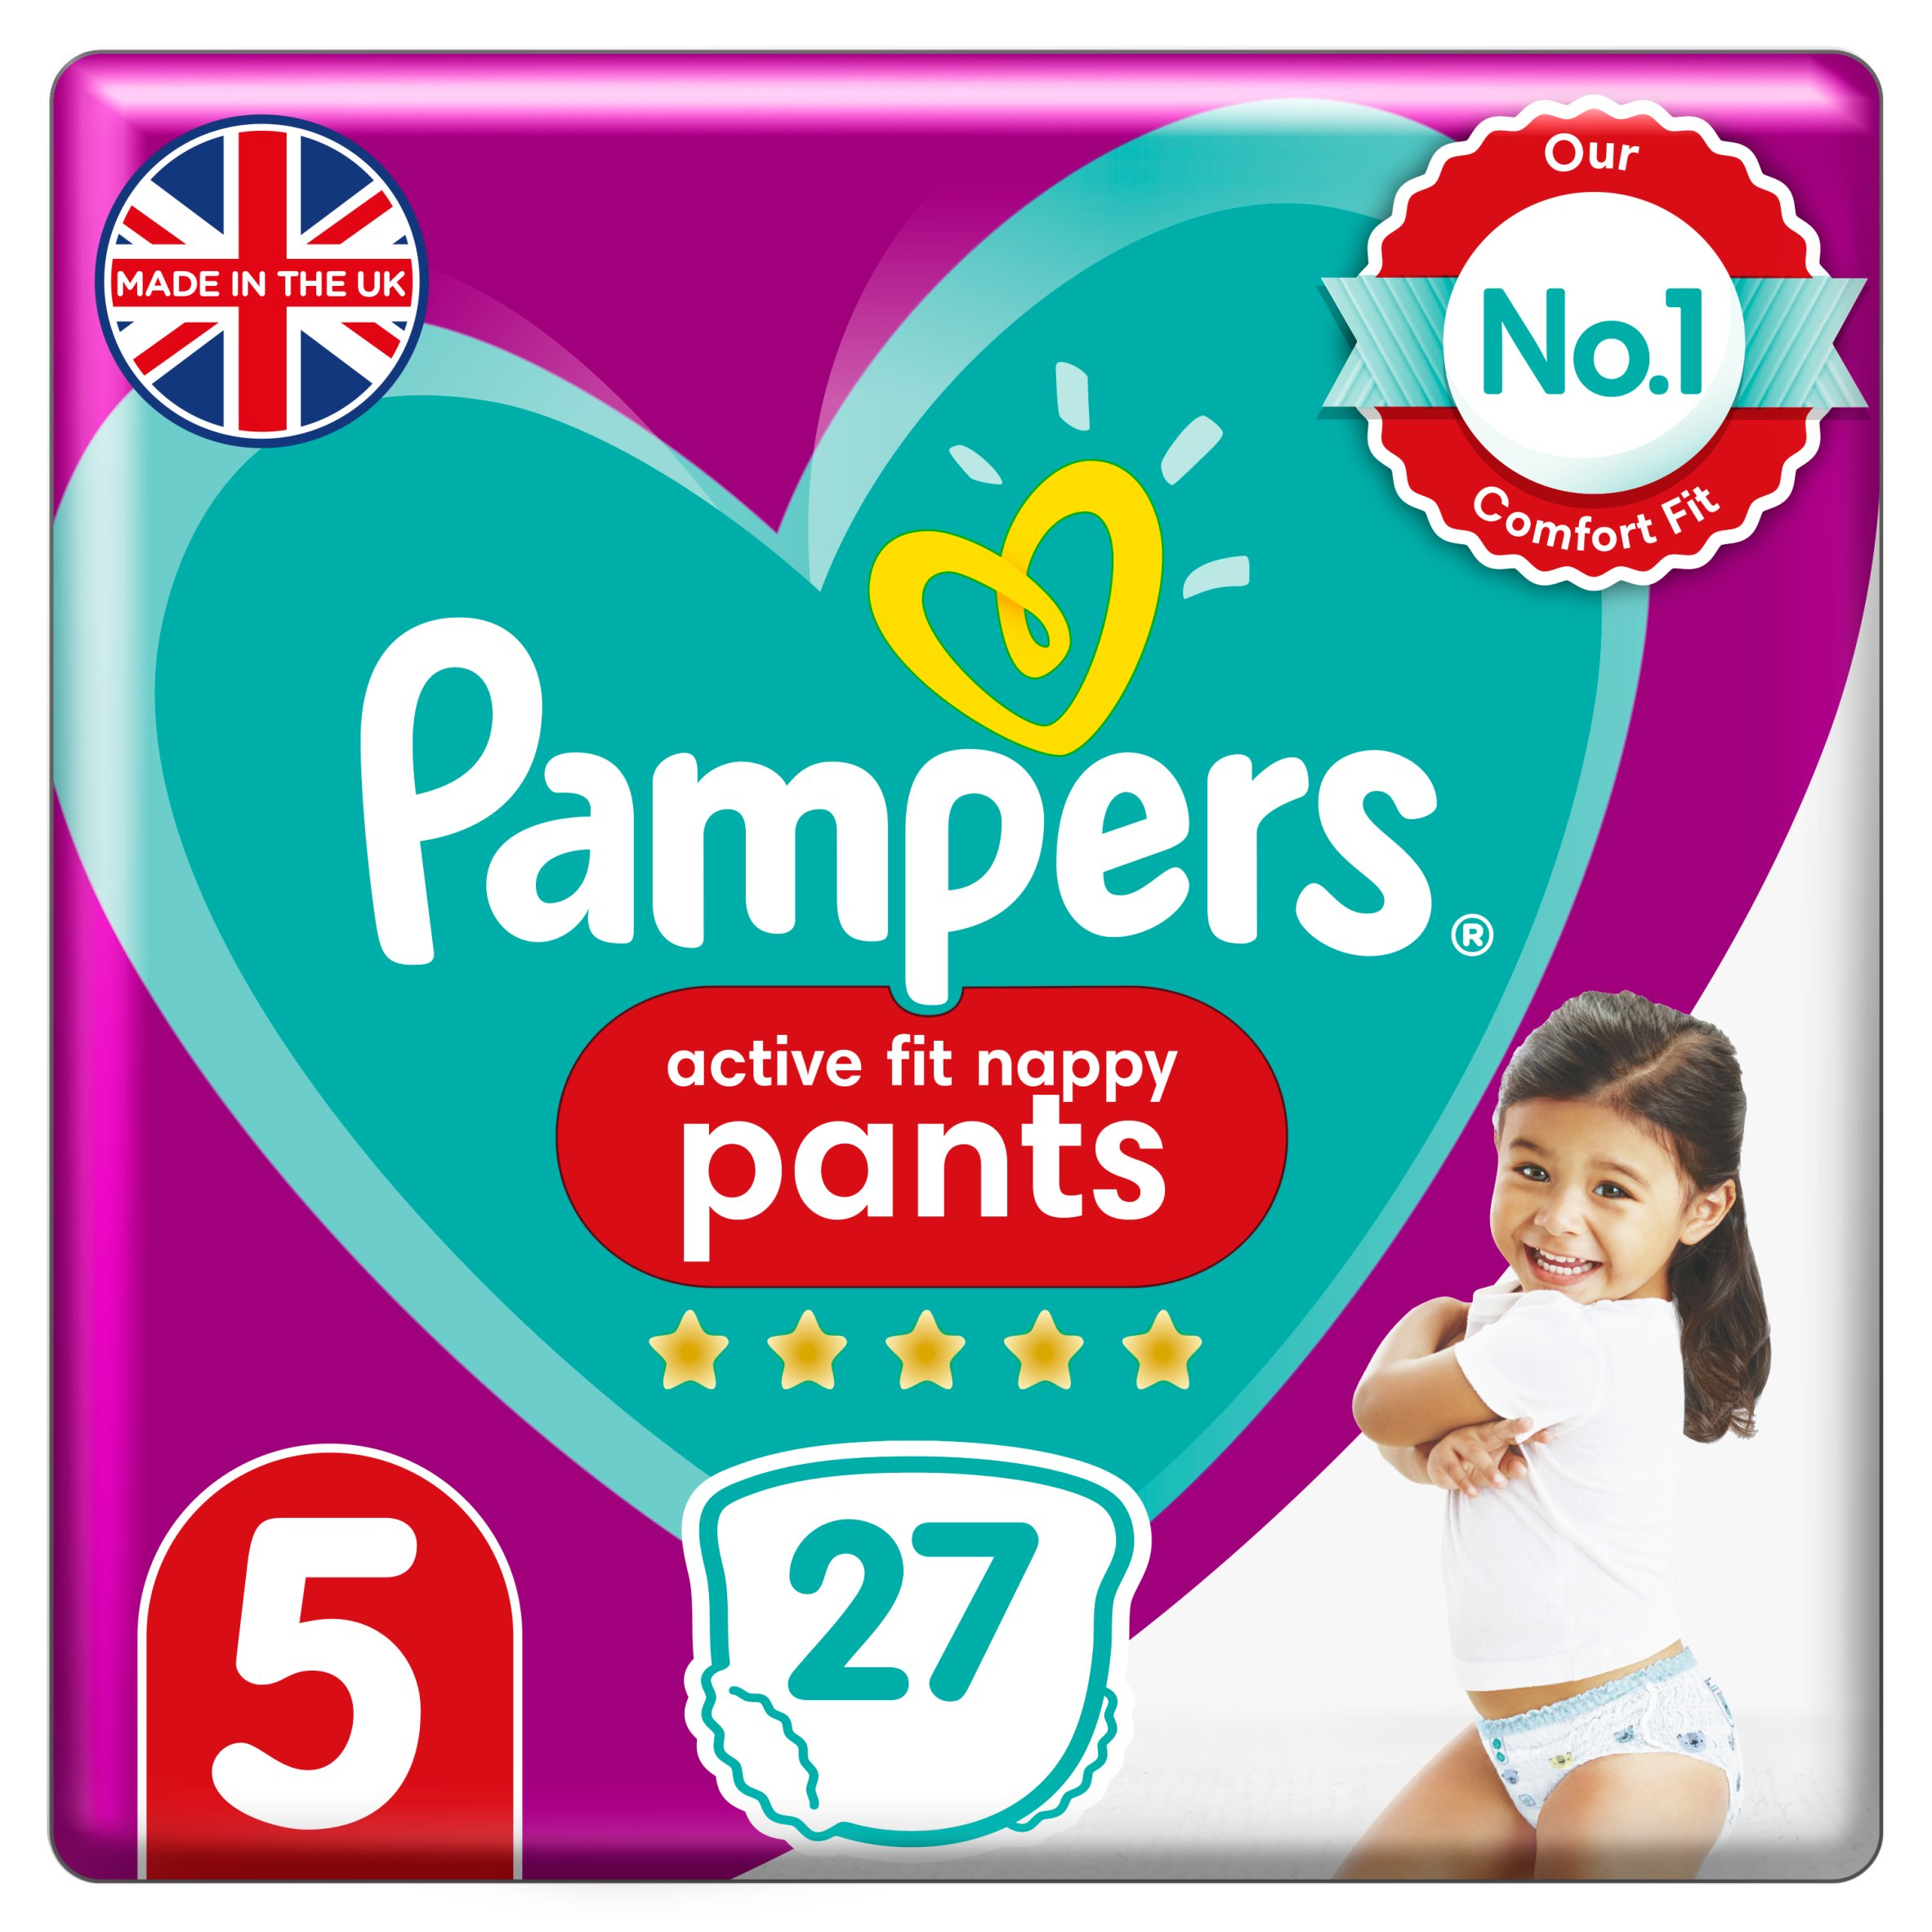 You can get this pack of nappies for under a fiver at Tesco